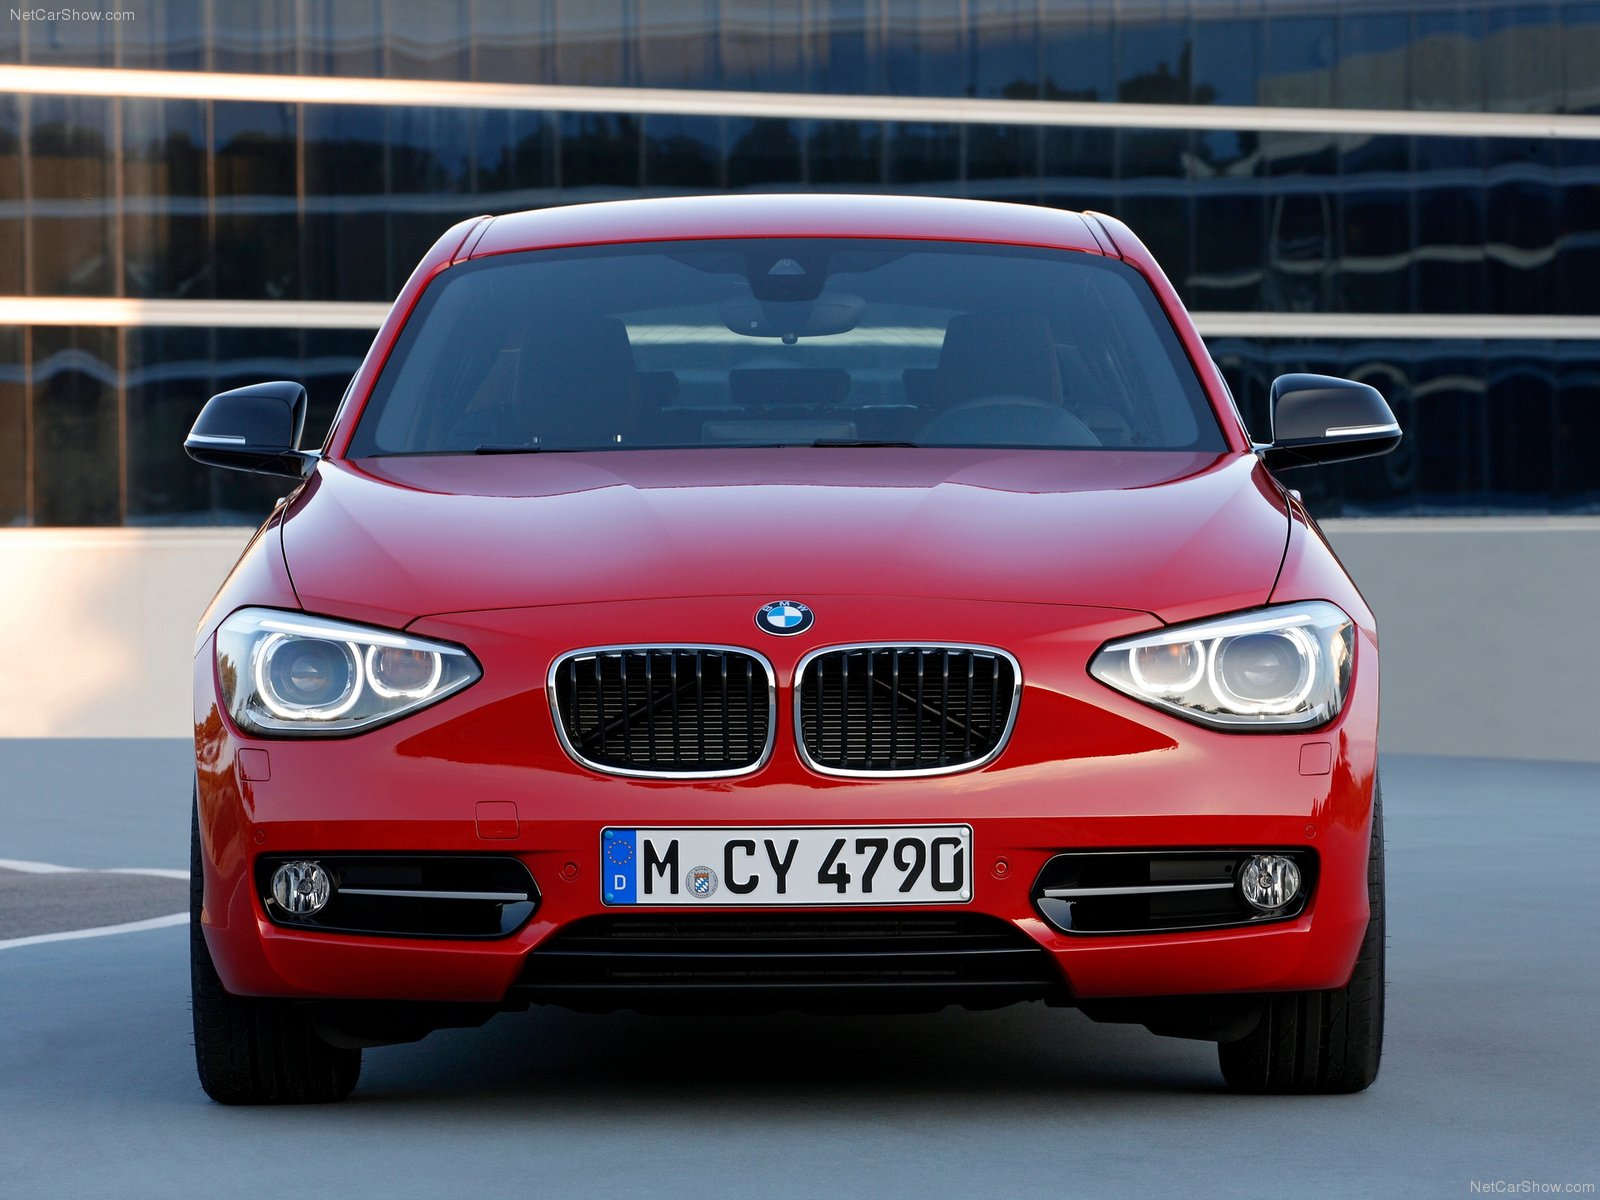 Bmw 1 Series Picture 81089 Bmw Photo Gallery Carsbasecom